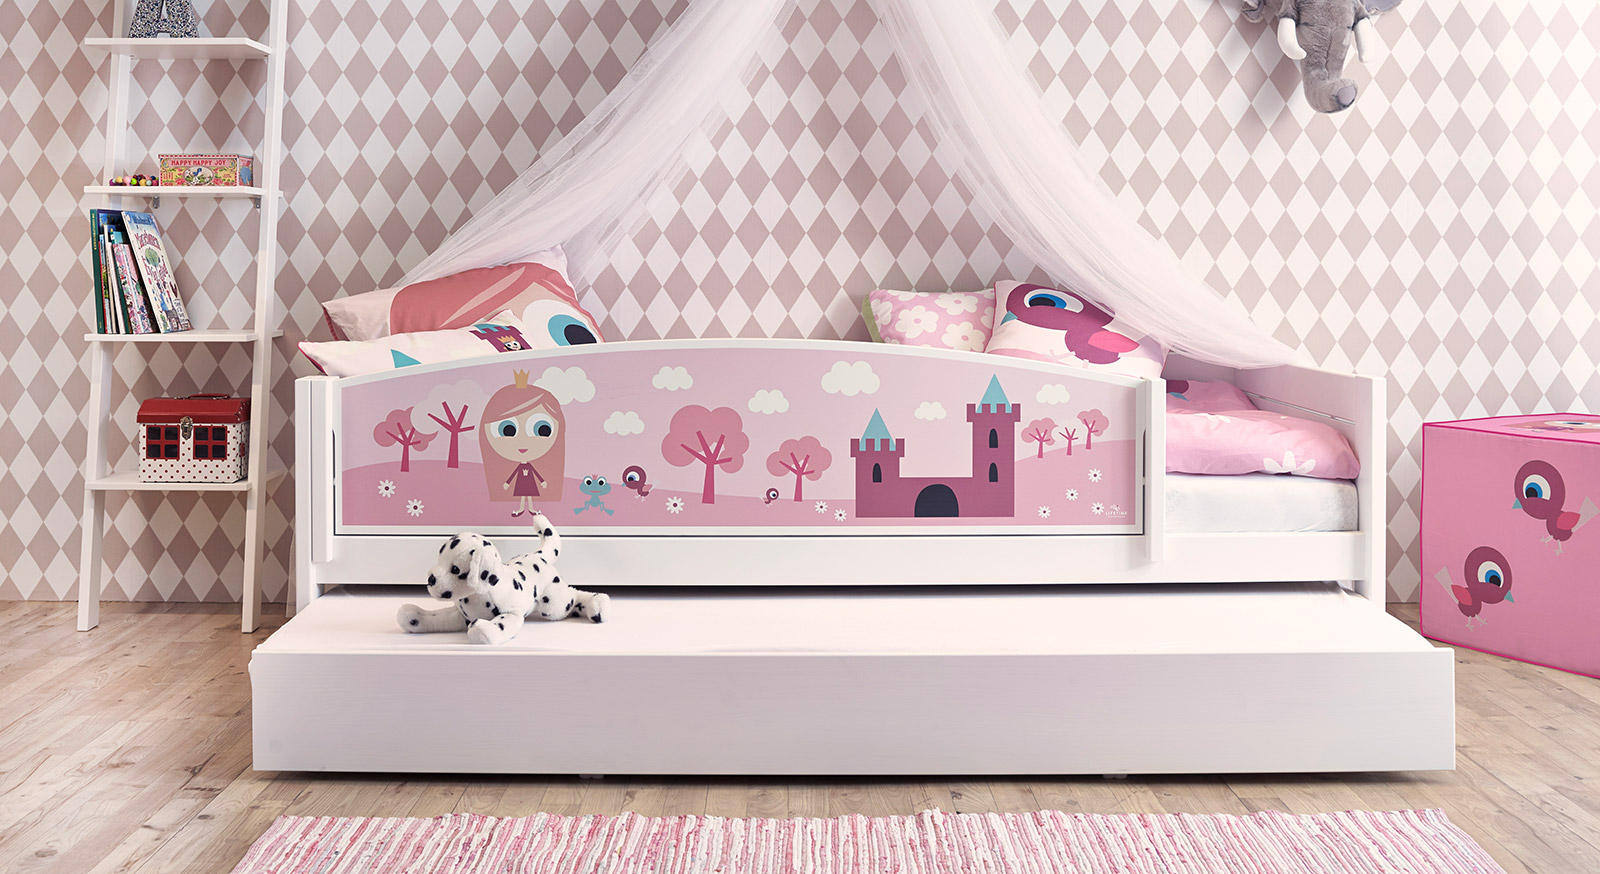 kinderbett f r kleine prinzessinnen lifetime prinzessin. Black Bedroom Furniture Sets. Home Design Ideas